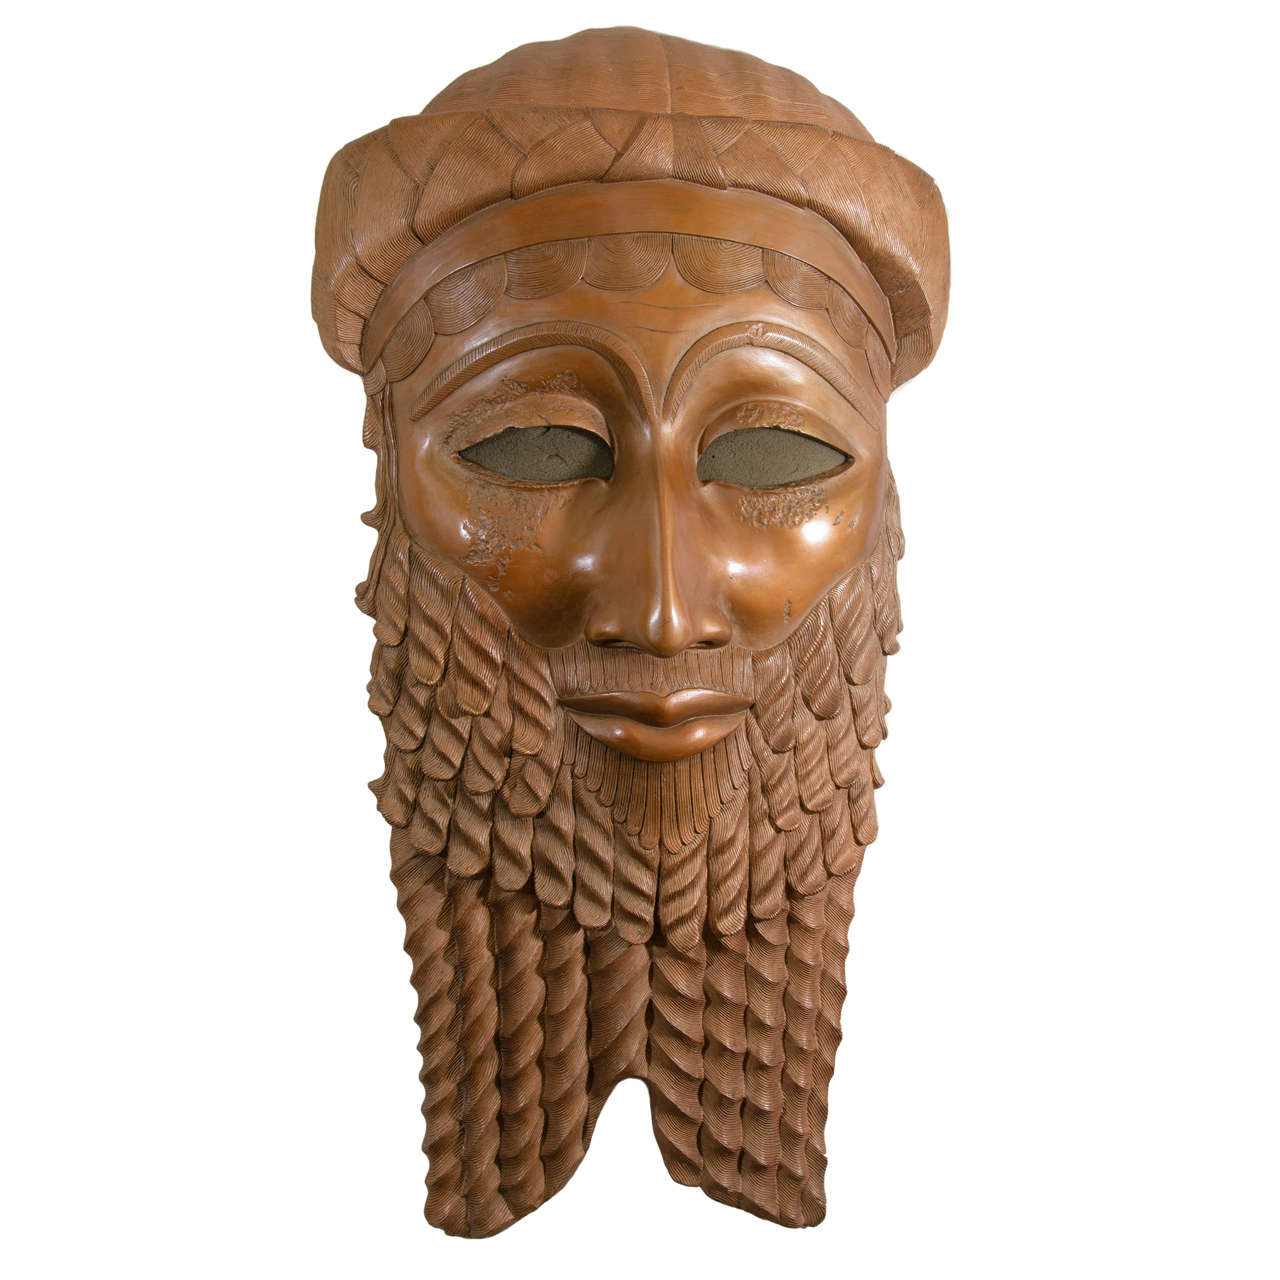 Home Center Decor A Bronze Sculpture Of The Head Of Iraqi King Sargon Of